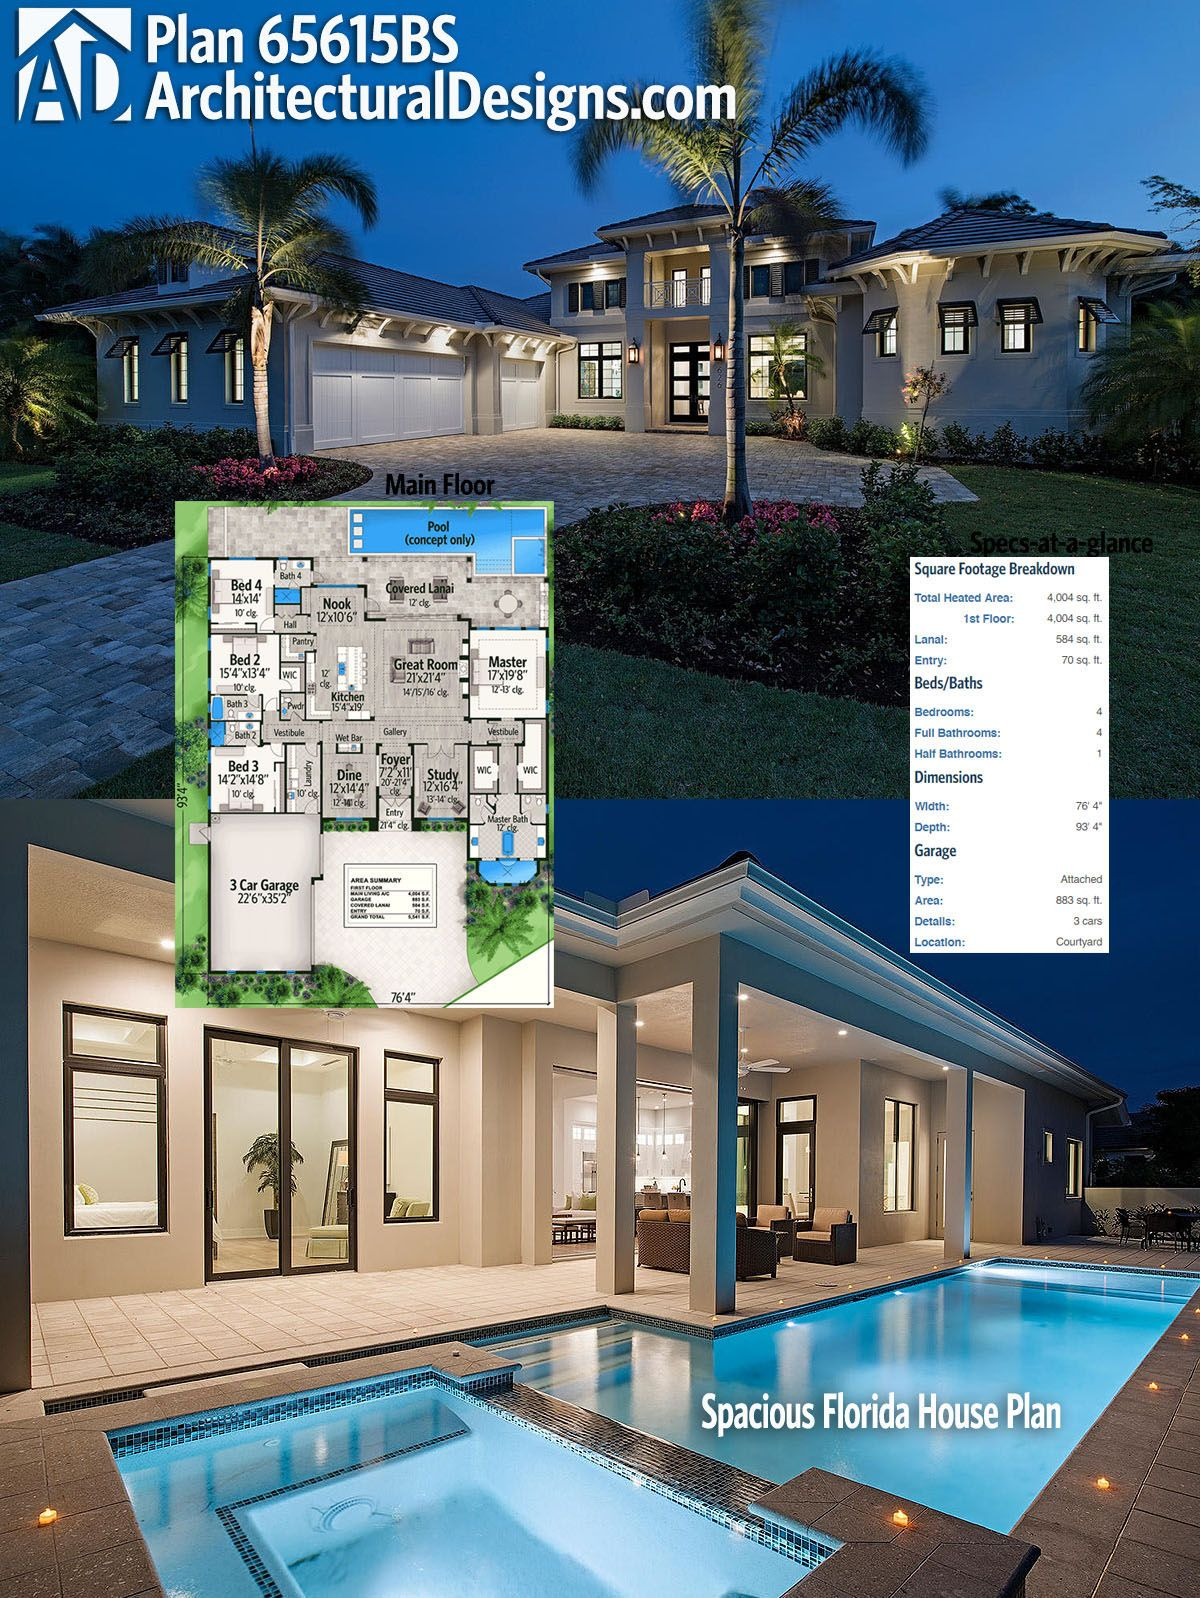 The covered lanai in back of architectural designs house plan 65615bs has 12 ceilings and